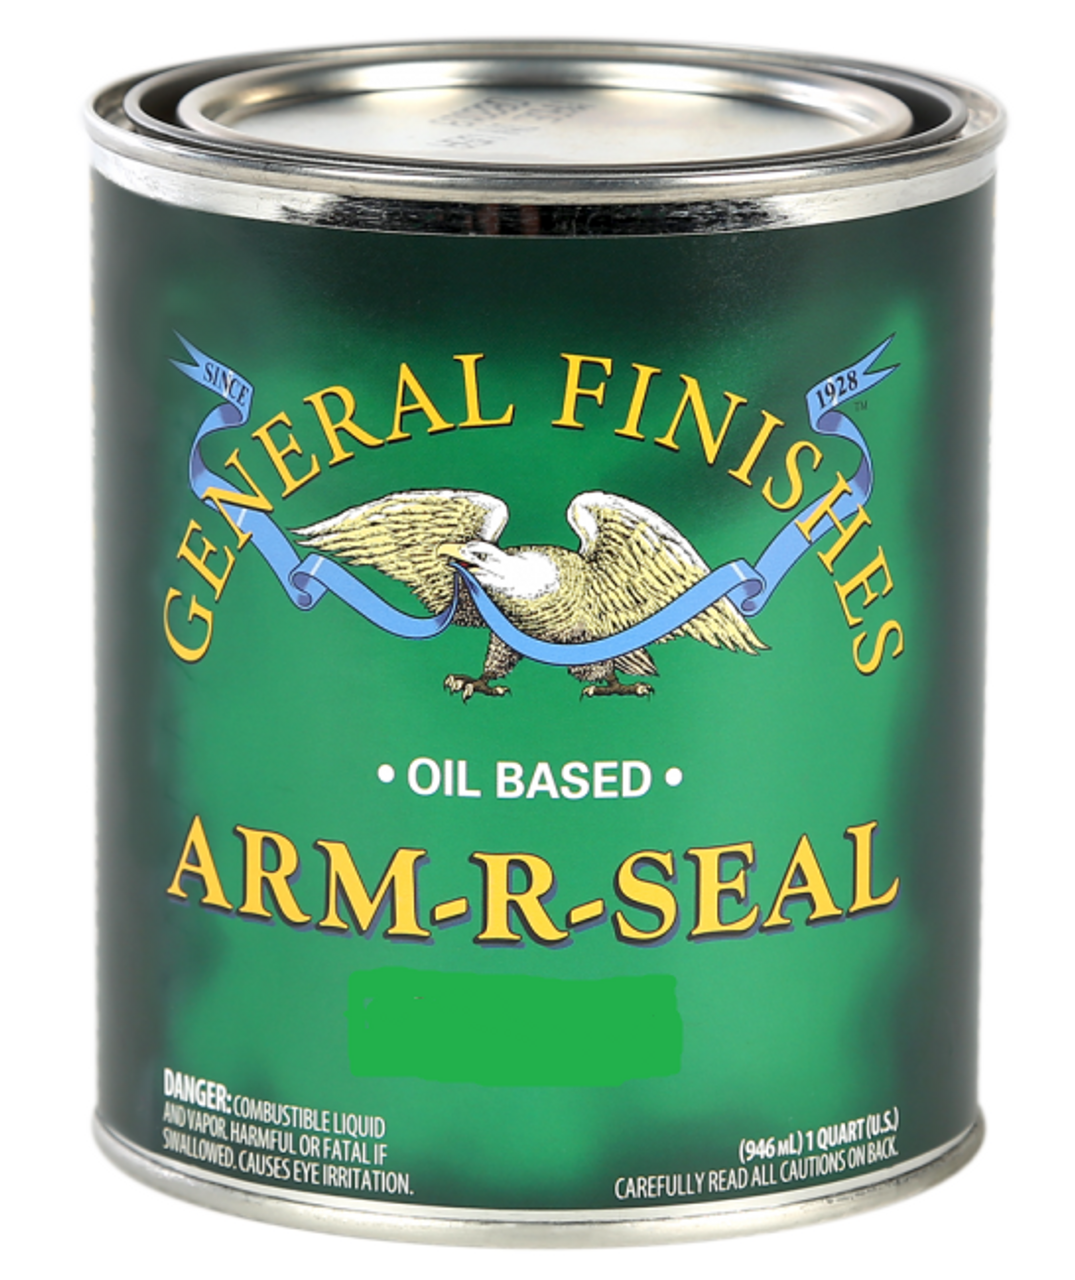 General Finishes - ARM-R-SEAL - GLOSS - QUART (606016104062)